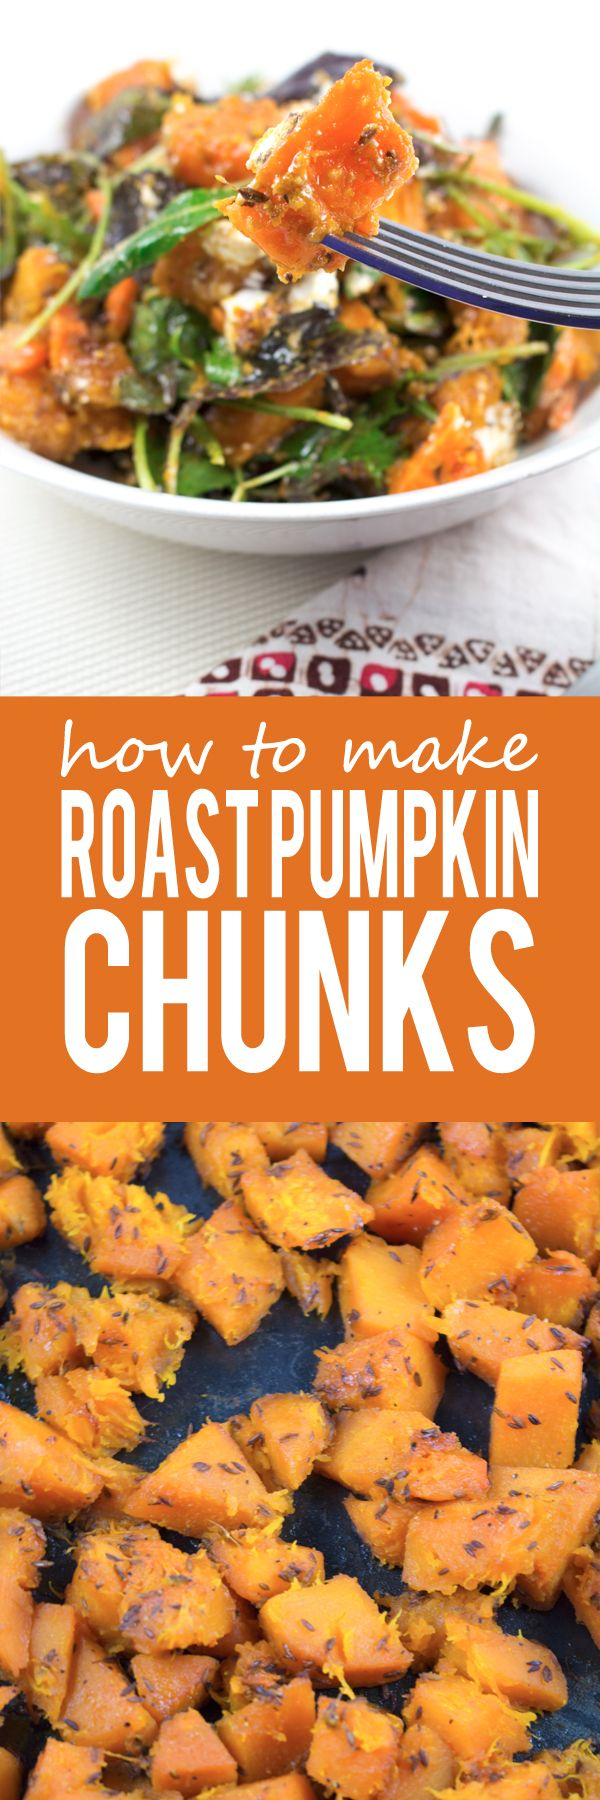 Roast Pumpkin Chunks - A quick and easy roast pumpkin recipe that can be used in countless recipes! Nutty and peppery flavors of the cumin seeds penetrate the flesh of the pumpkin to give it a more complex flavor!!